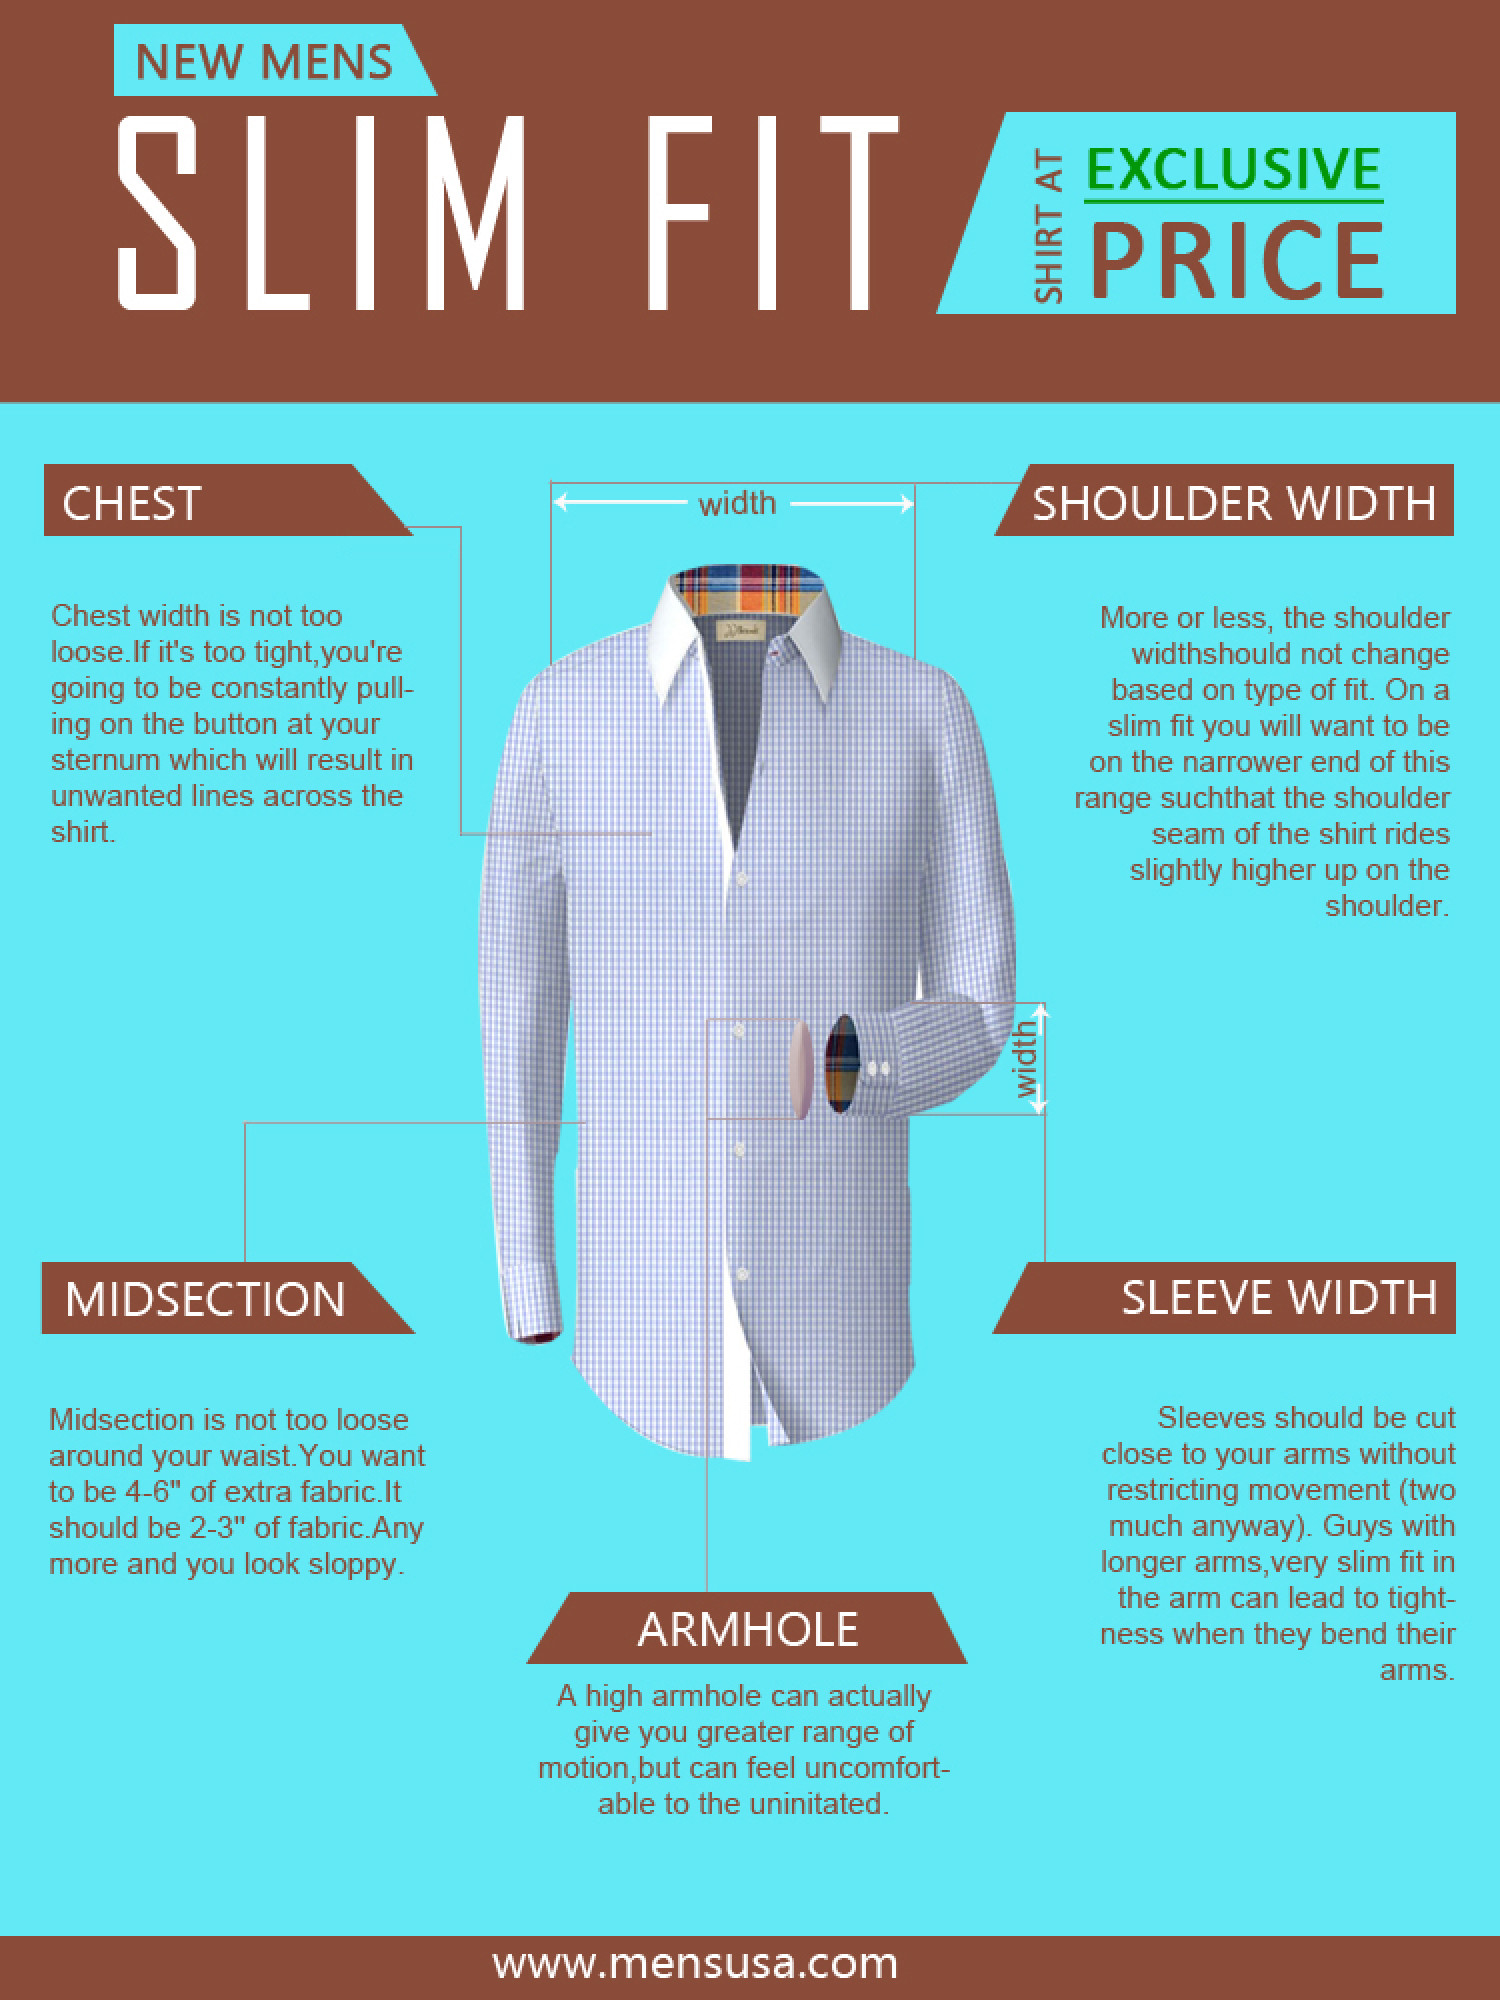 New Mens slim fit shirt at exclusive price Infographic